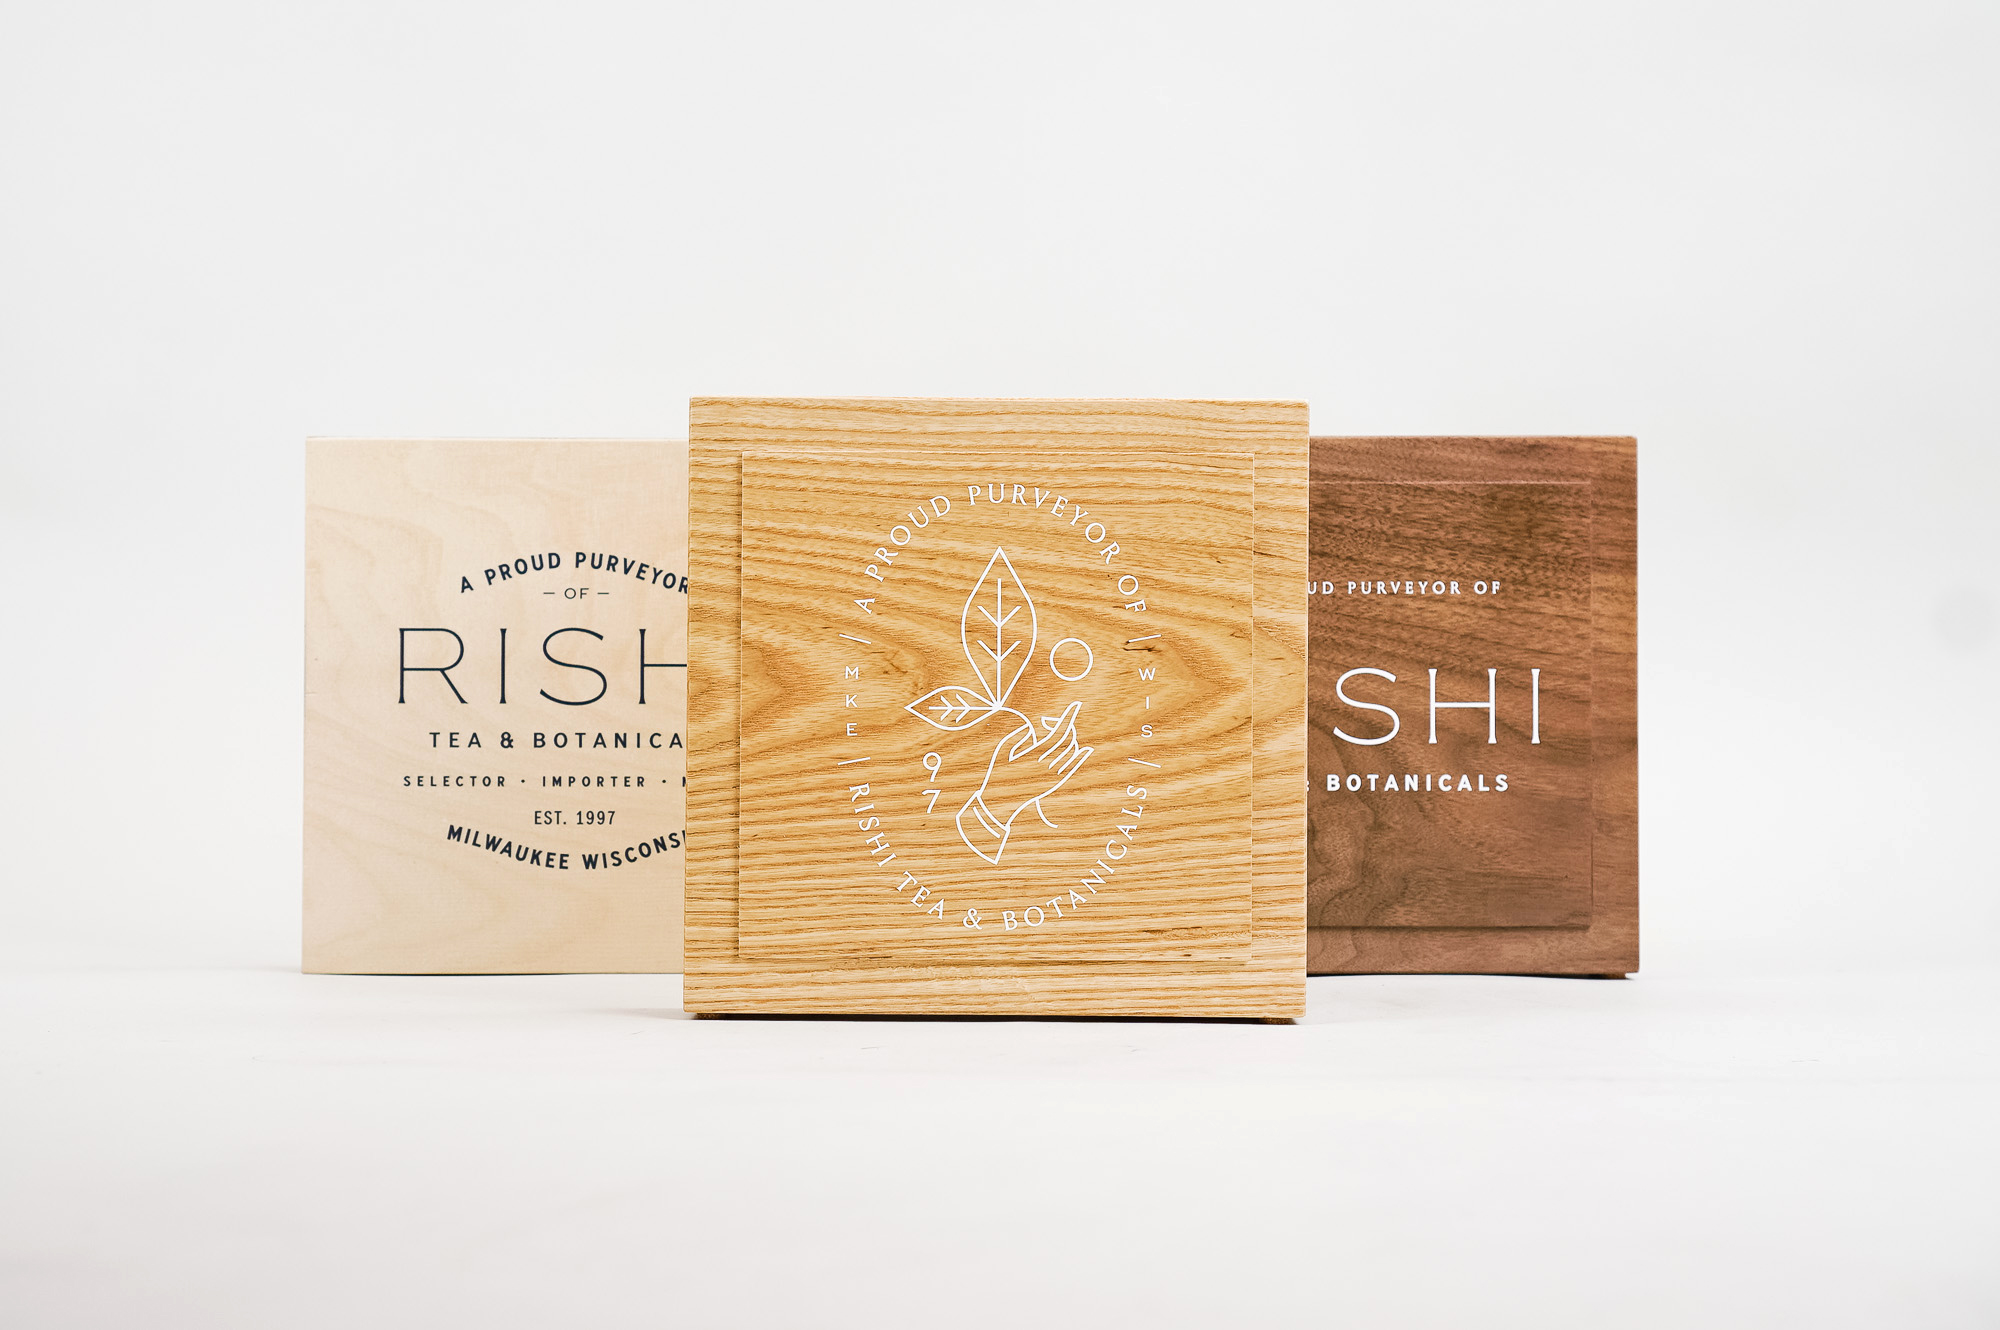 Solid wood retail/cafe sign with white artwork for RIshi, a Direct Trade importer of organic teas and botanicals from the very best sources.